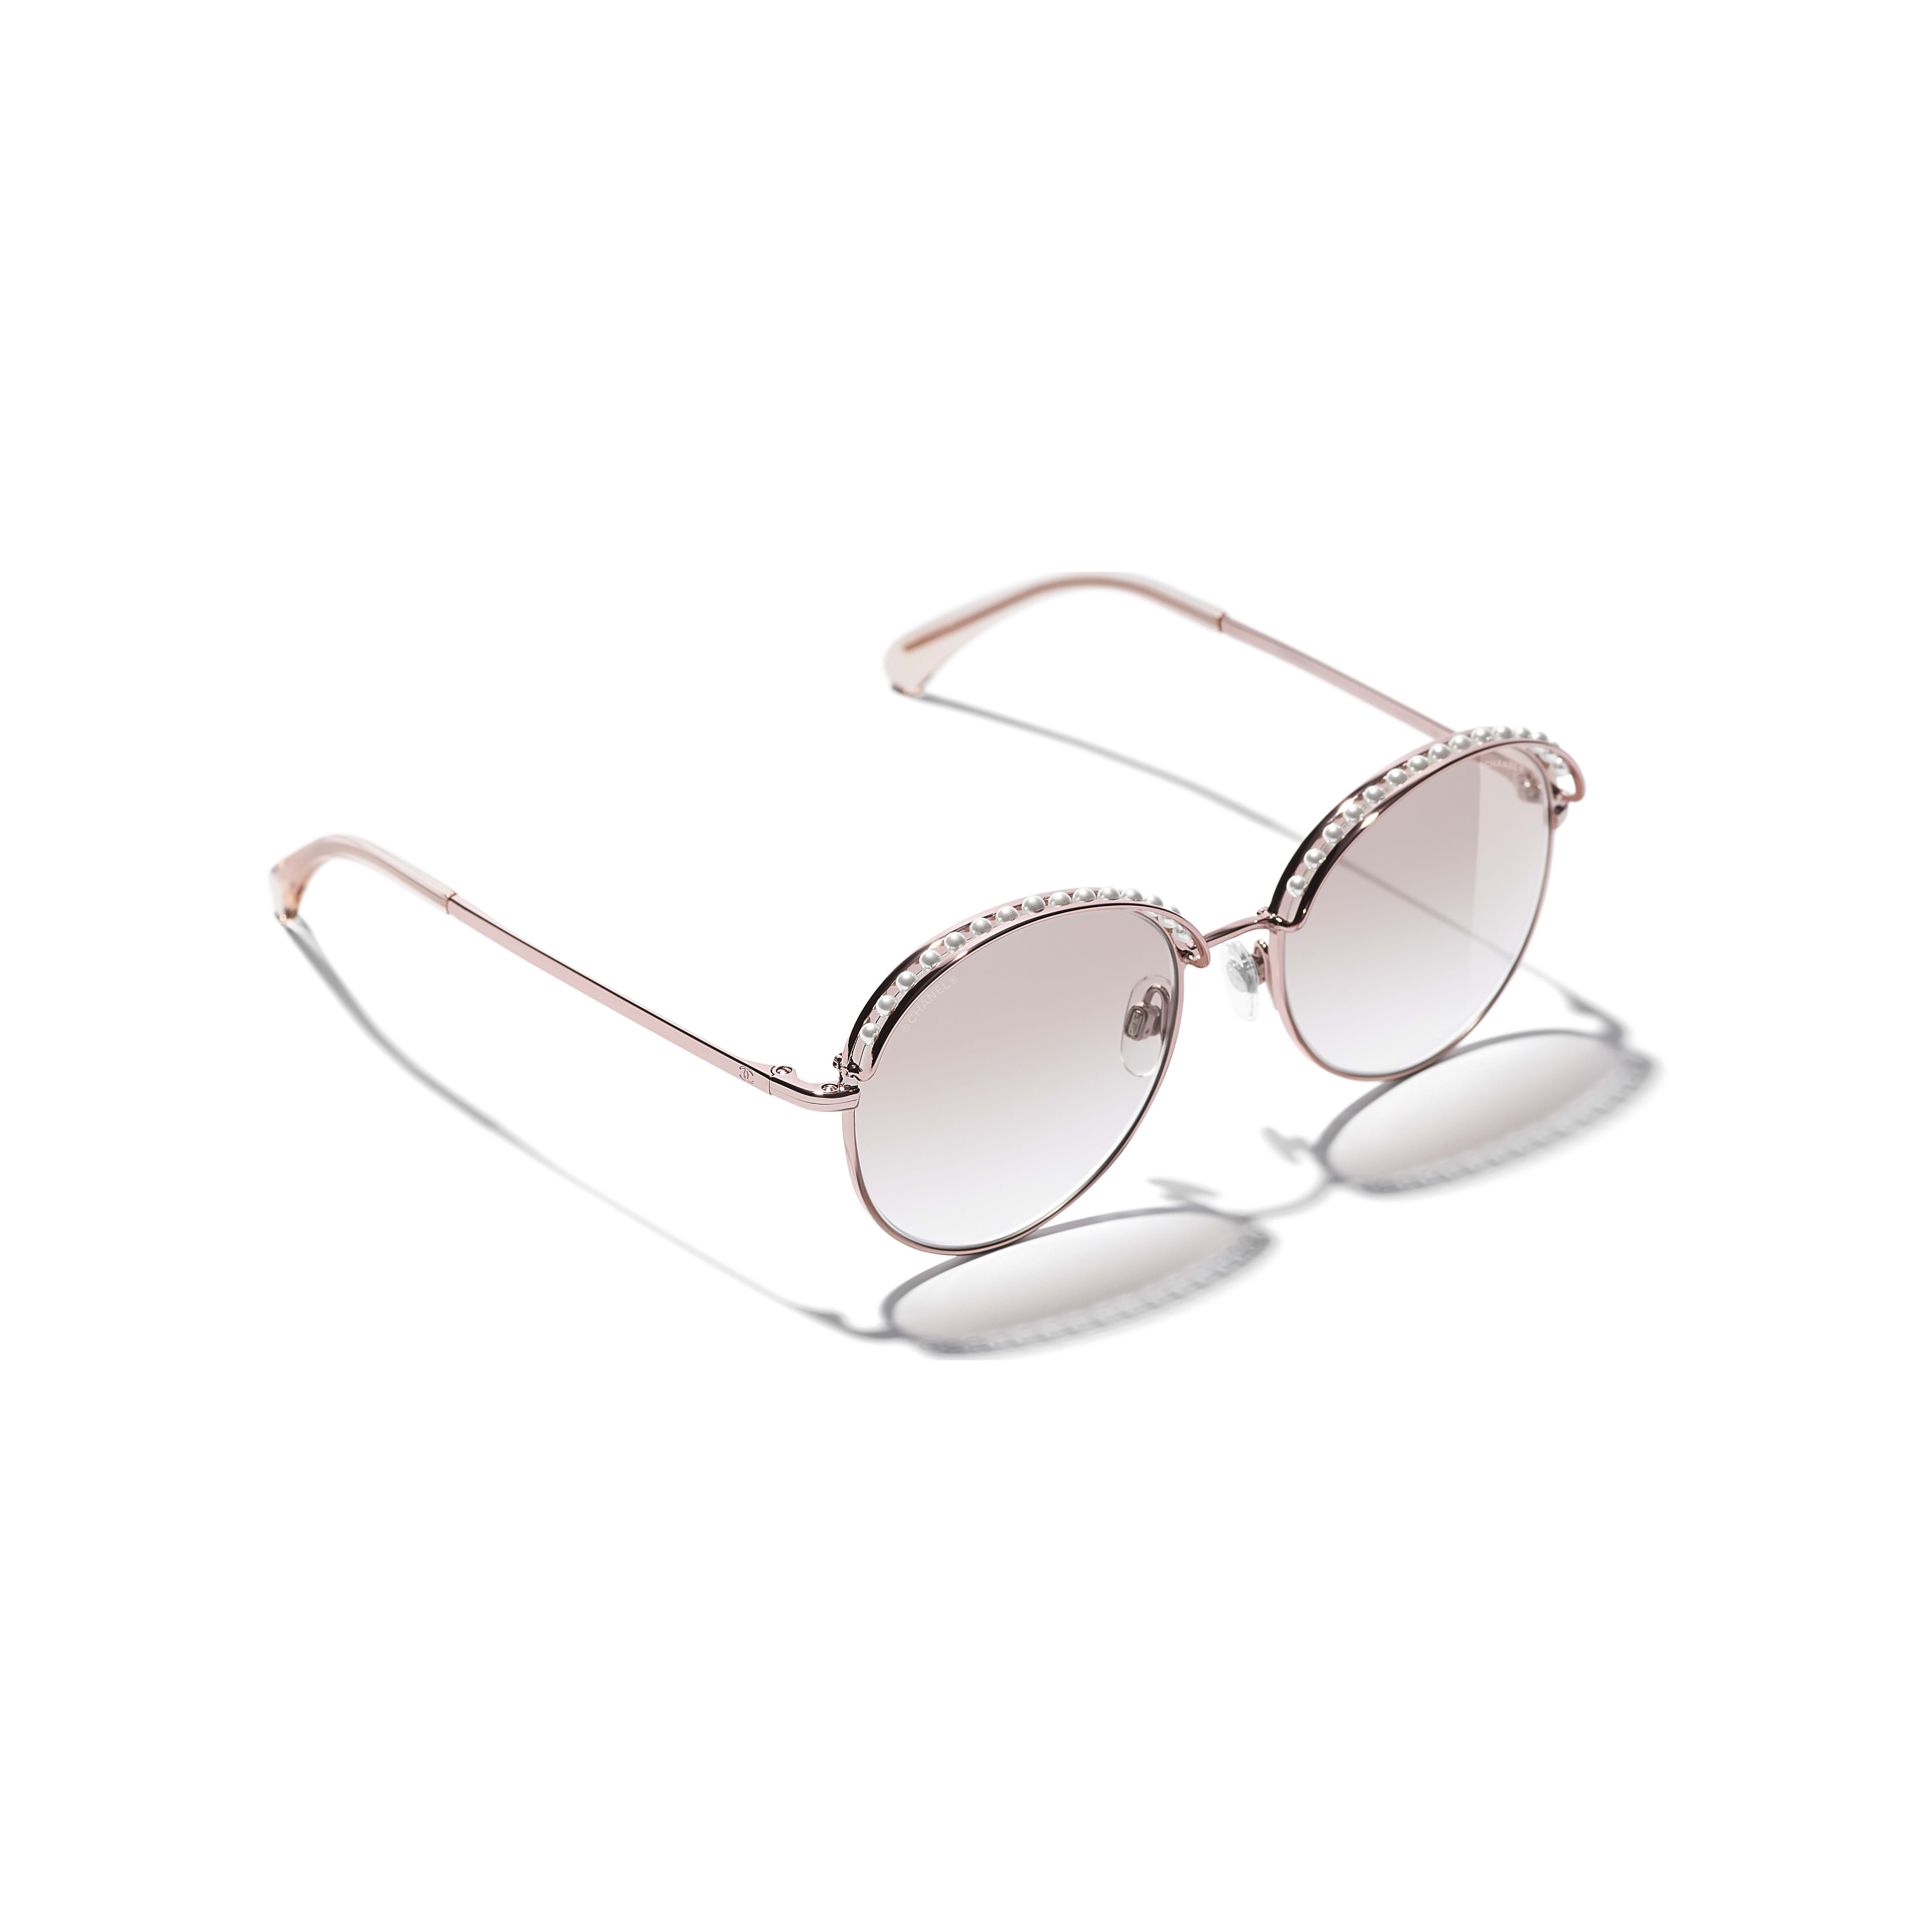 Round Sunglasses - Pinky Gold - Metal & Imitation Pearls - Extra view - see full sized version